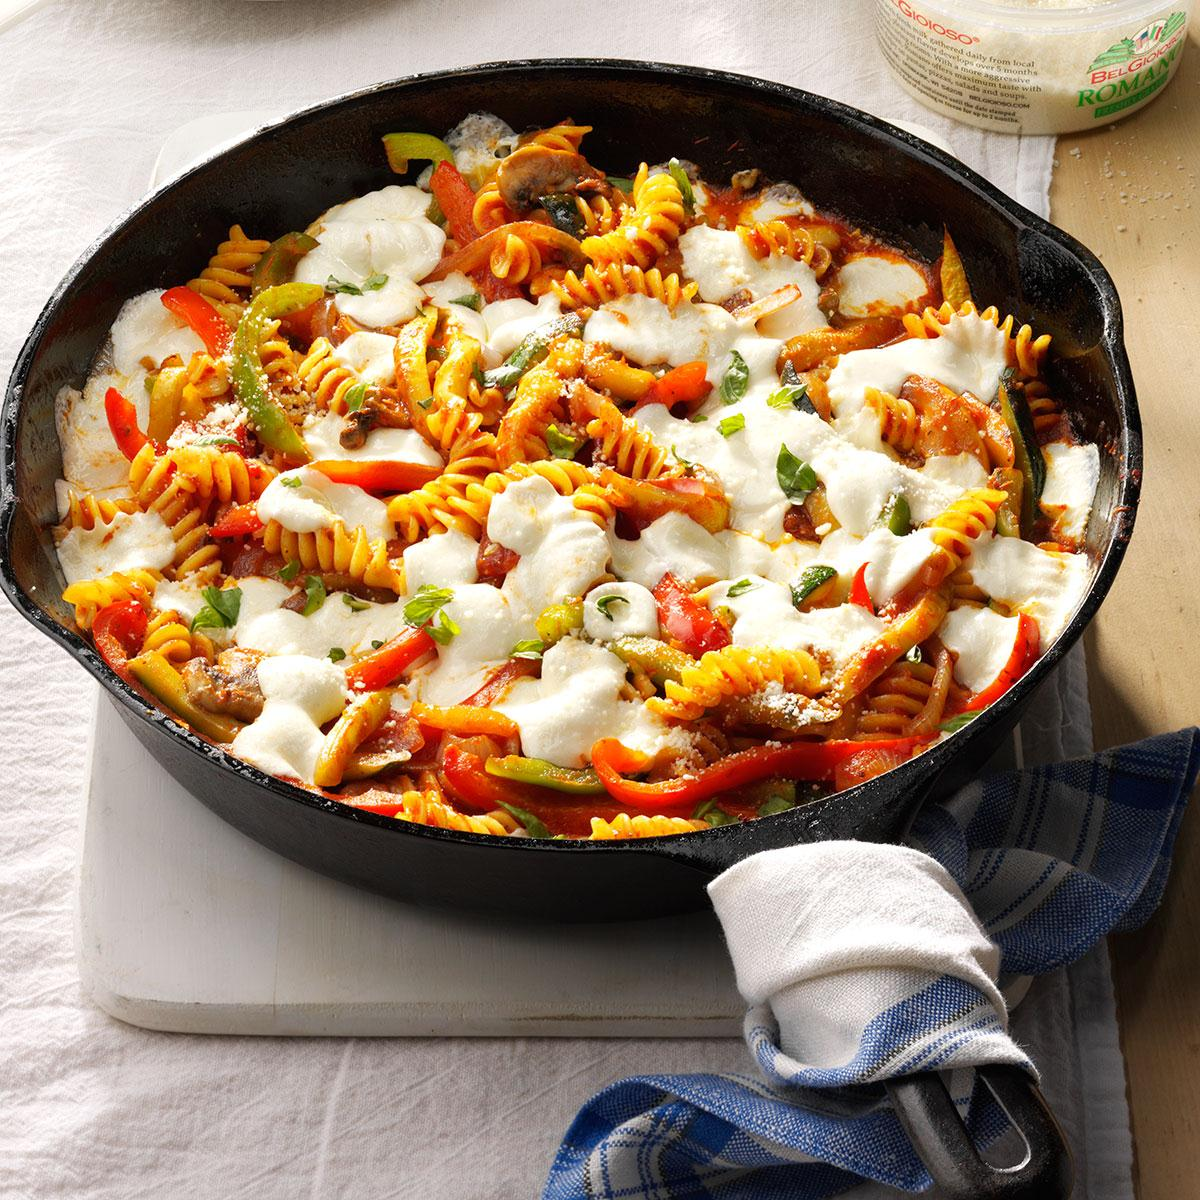 Image result for Veg Spicy Pasta Recipes